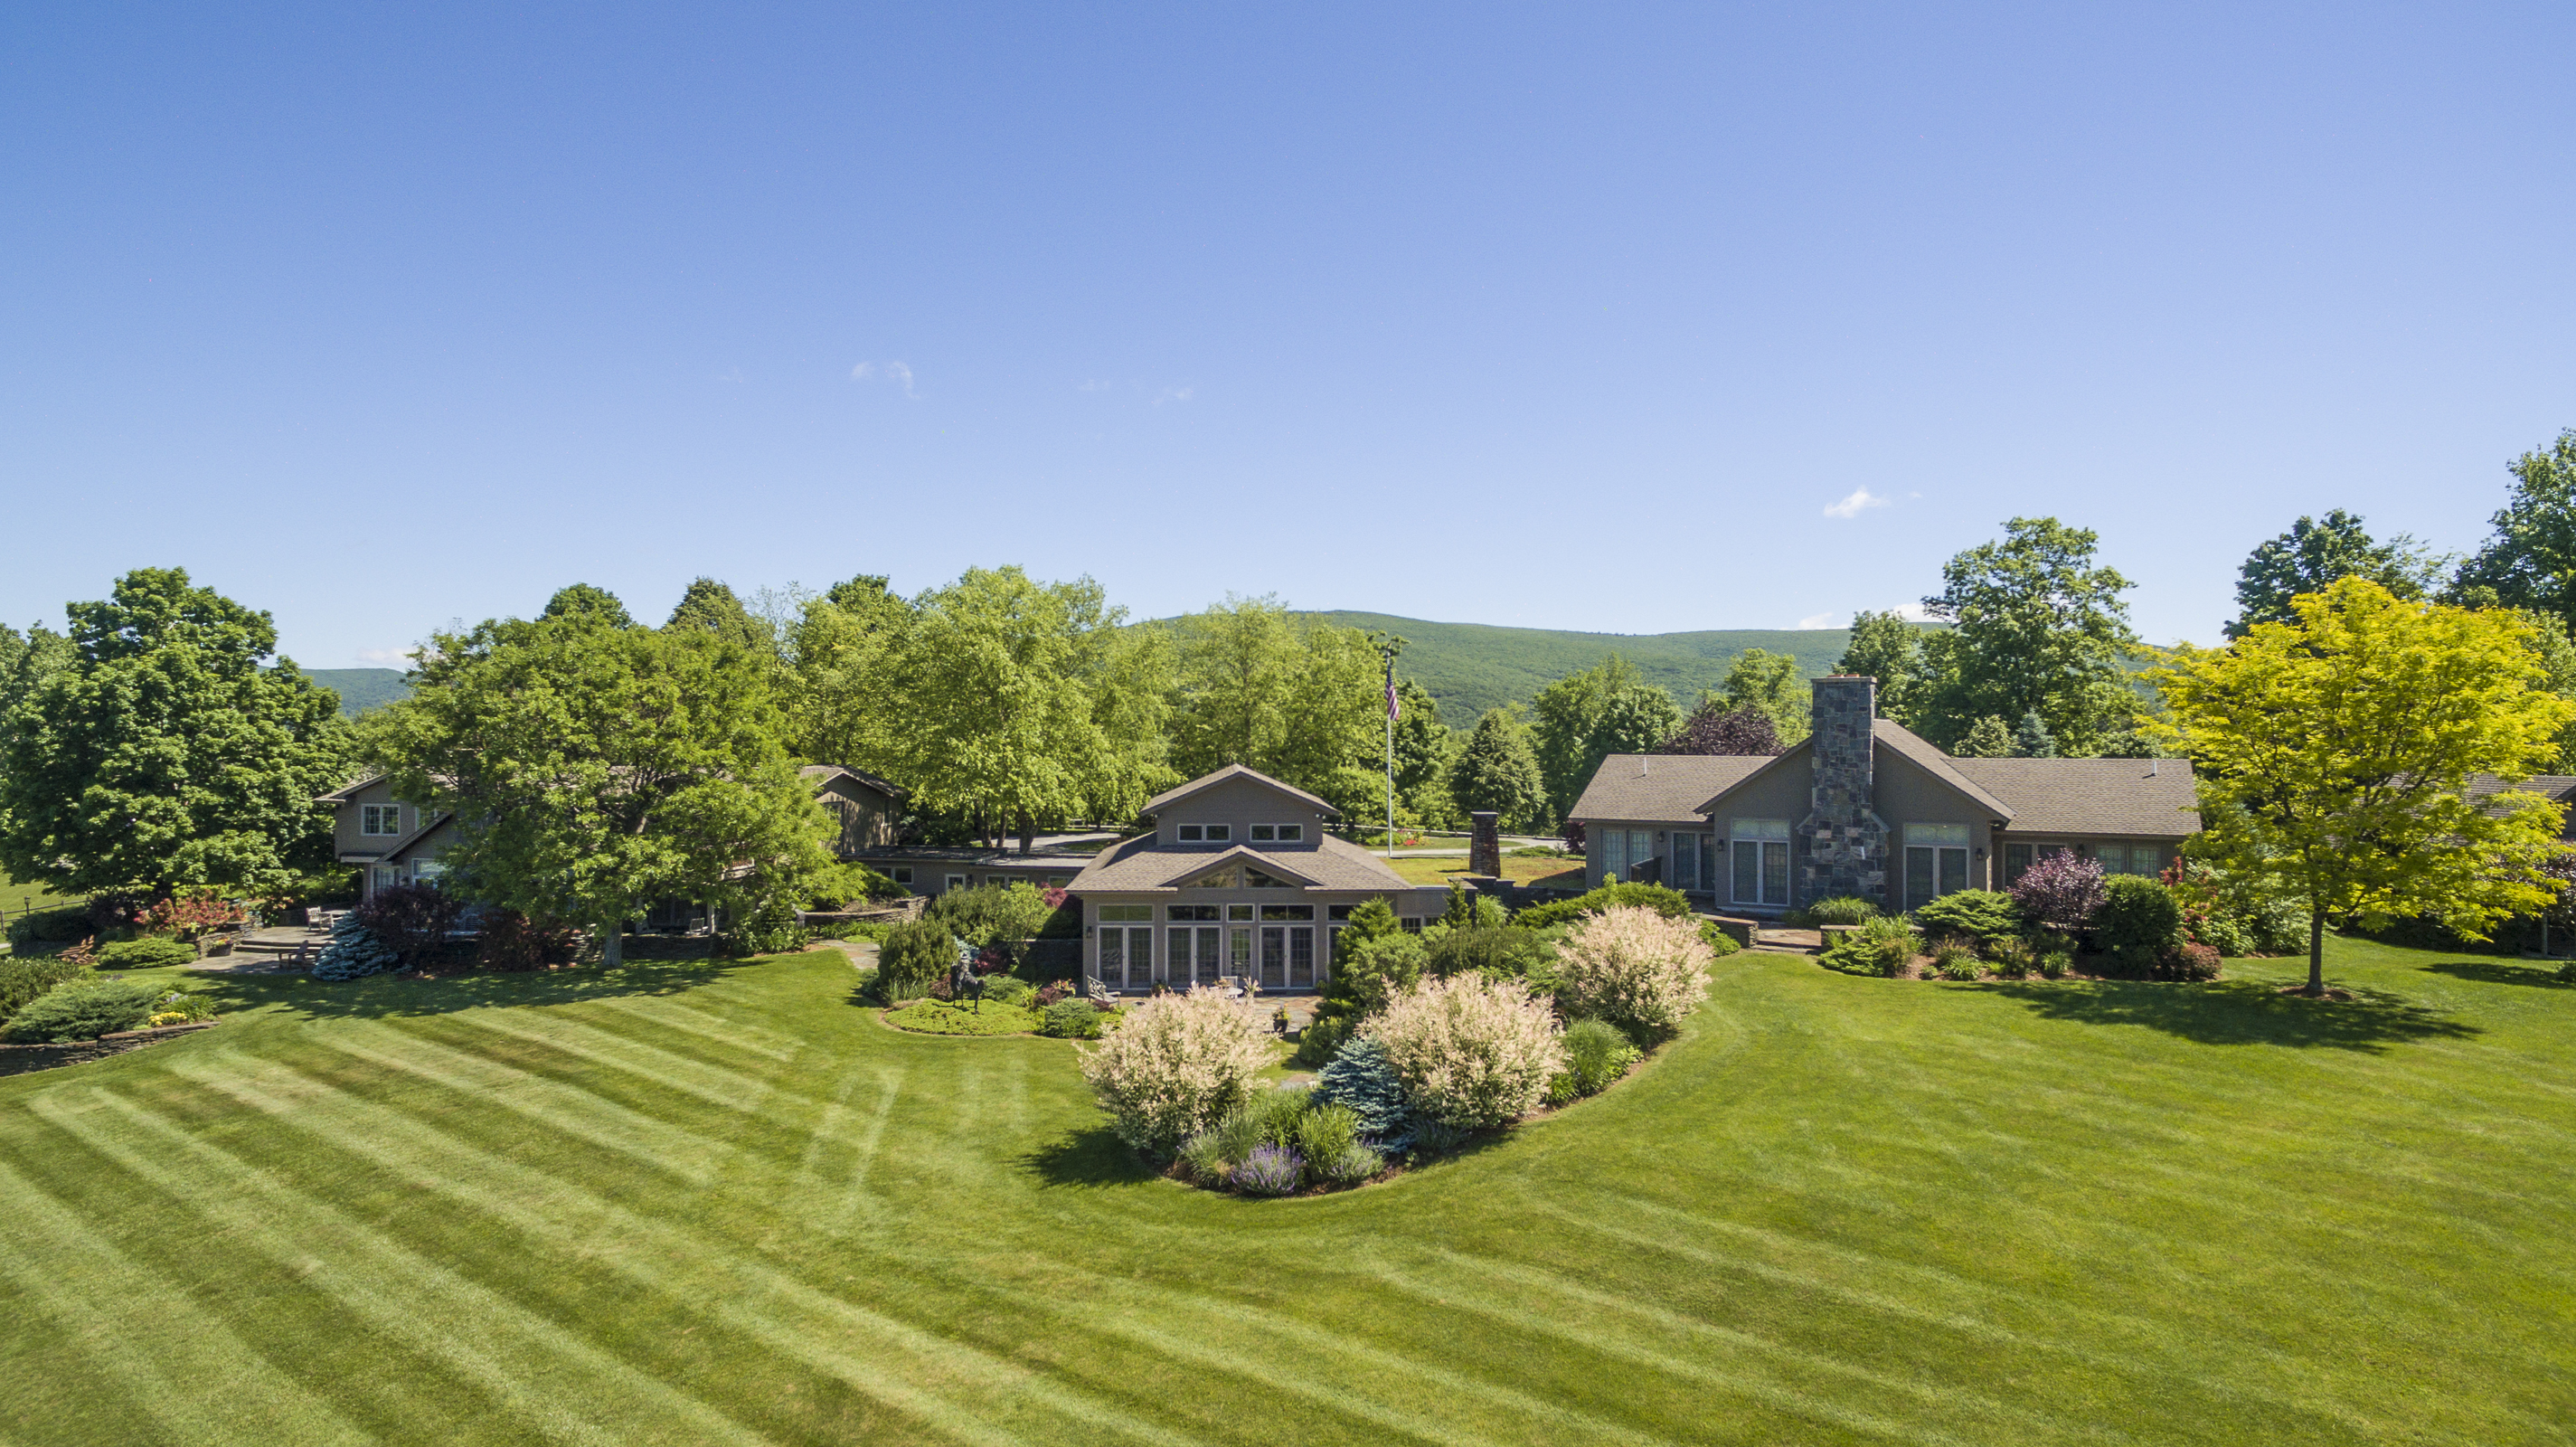 Villa per Vendita alle ore Live your dream in this stunning 11.7 acre country estate with indoor pool and t 465 Stratton Rd Williamstown, Massachusetts, 01267 Stati Uniti